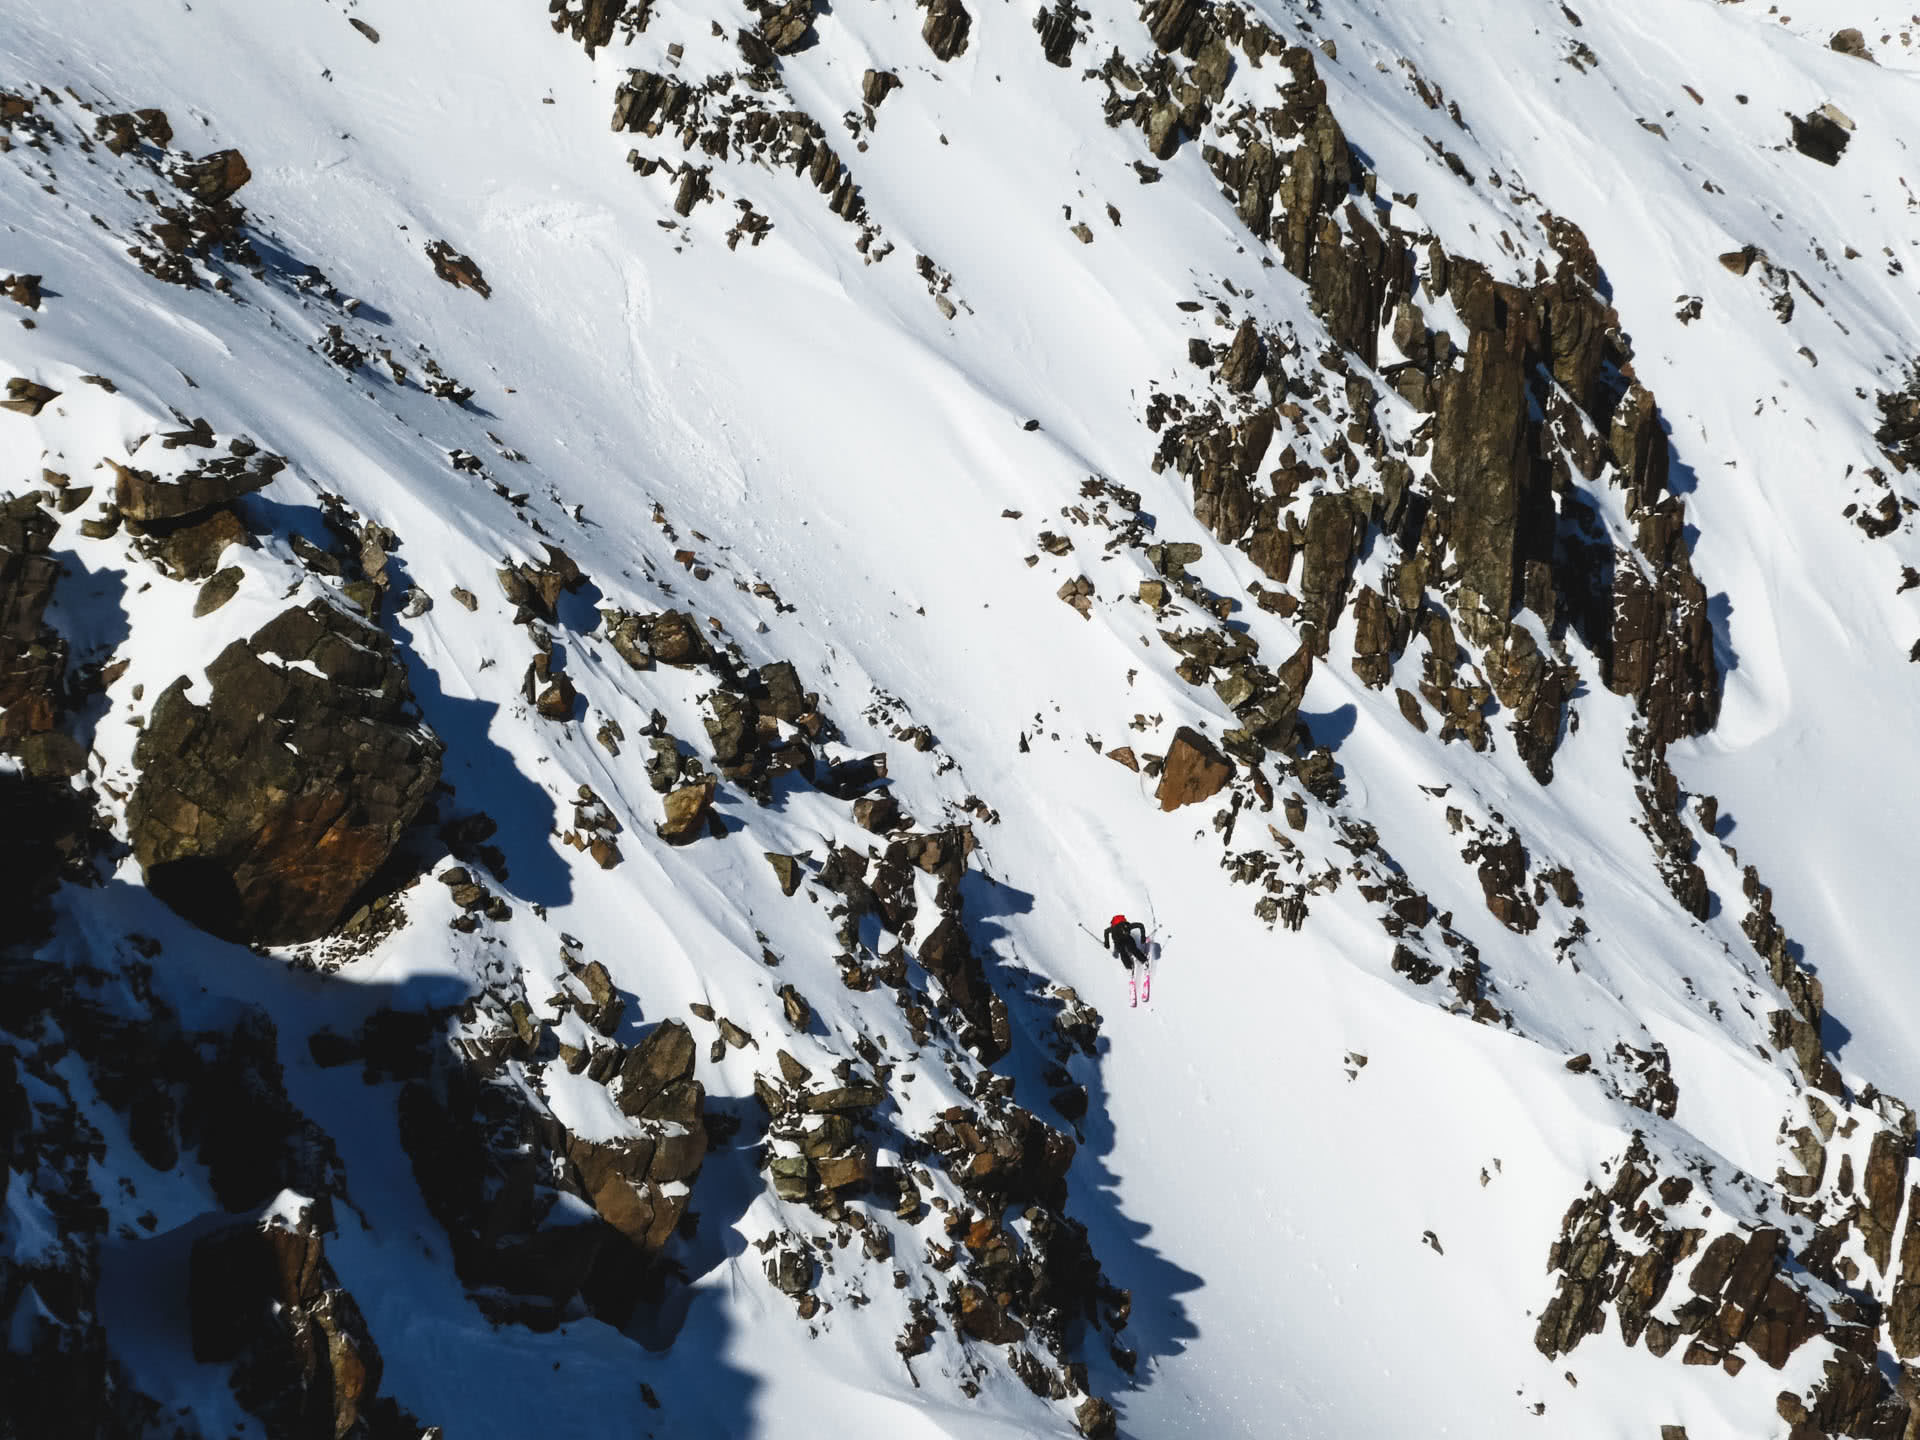 7 Skiing some of the backbowls beyond Ohau resort, 16 Just another Southern Alps view. Off the back at Porters, 21 Laurence climbing up the access walking track to Temple Basin ski area, colouir